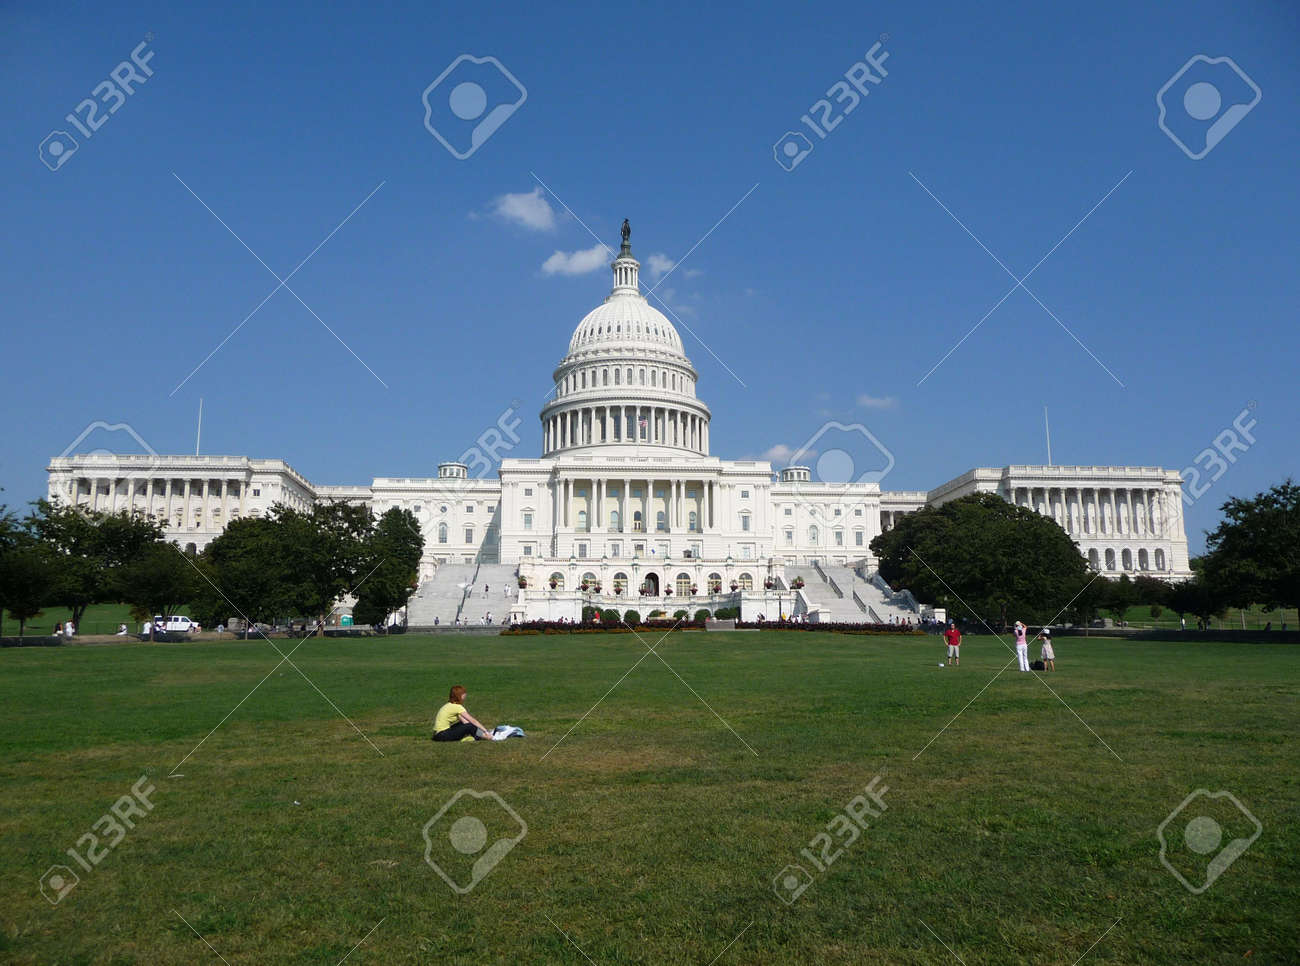 Capitol Building in Washington D.C. Stock Photo - 3552689